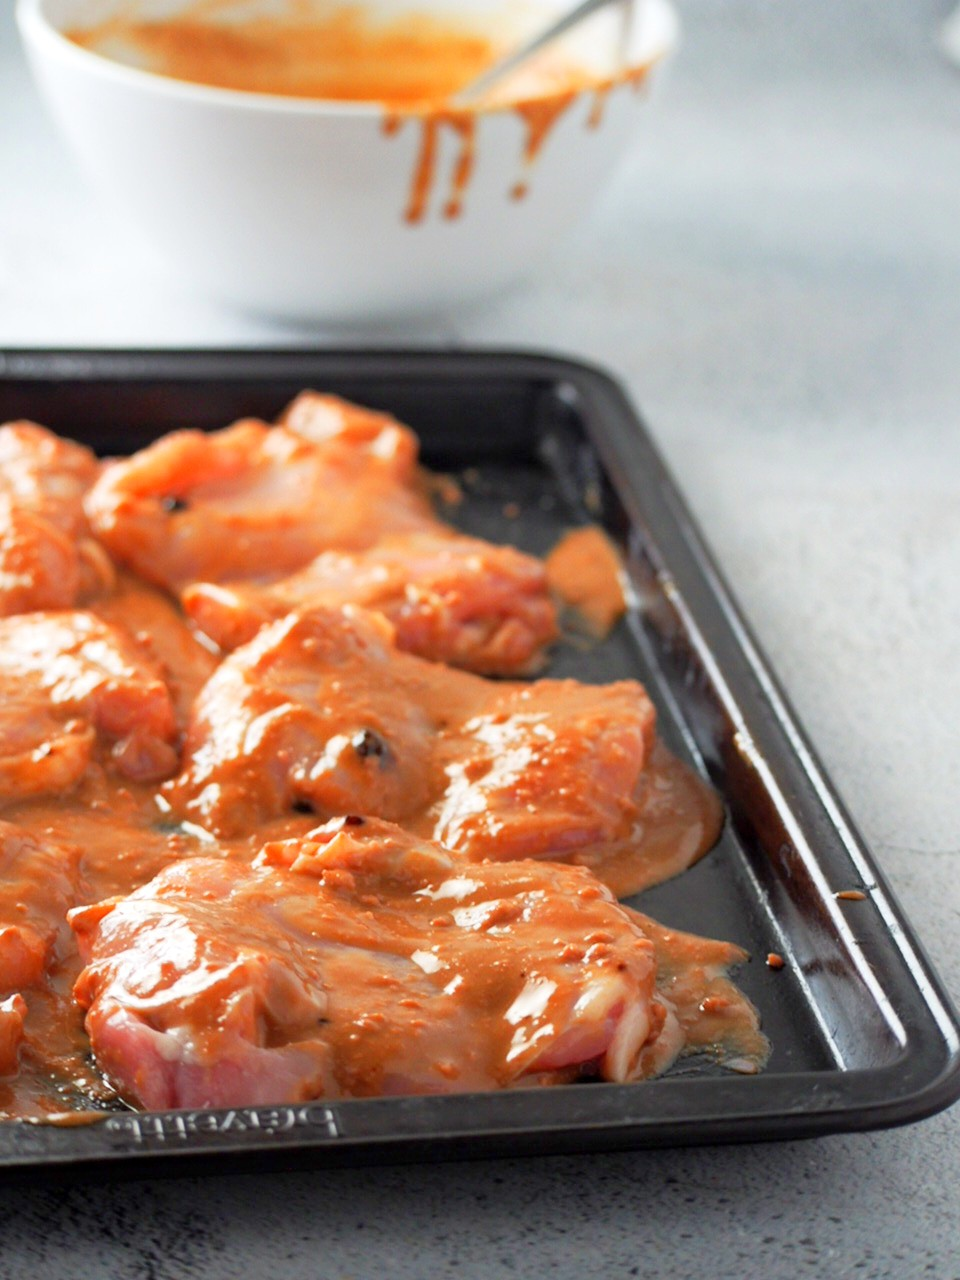 Raw chicken thighs on baking tray, smothered with the liver spread sauce.